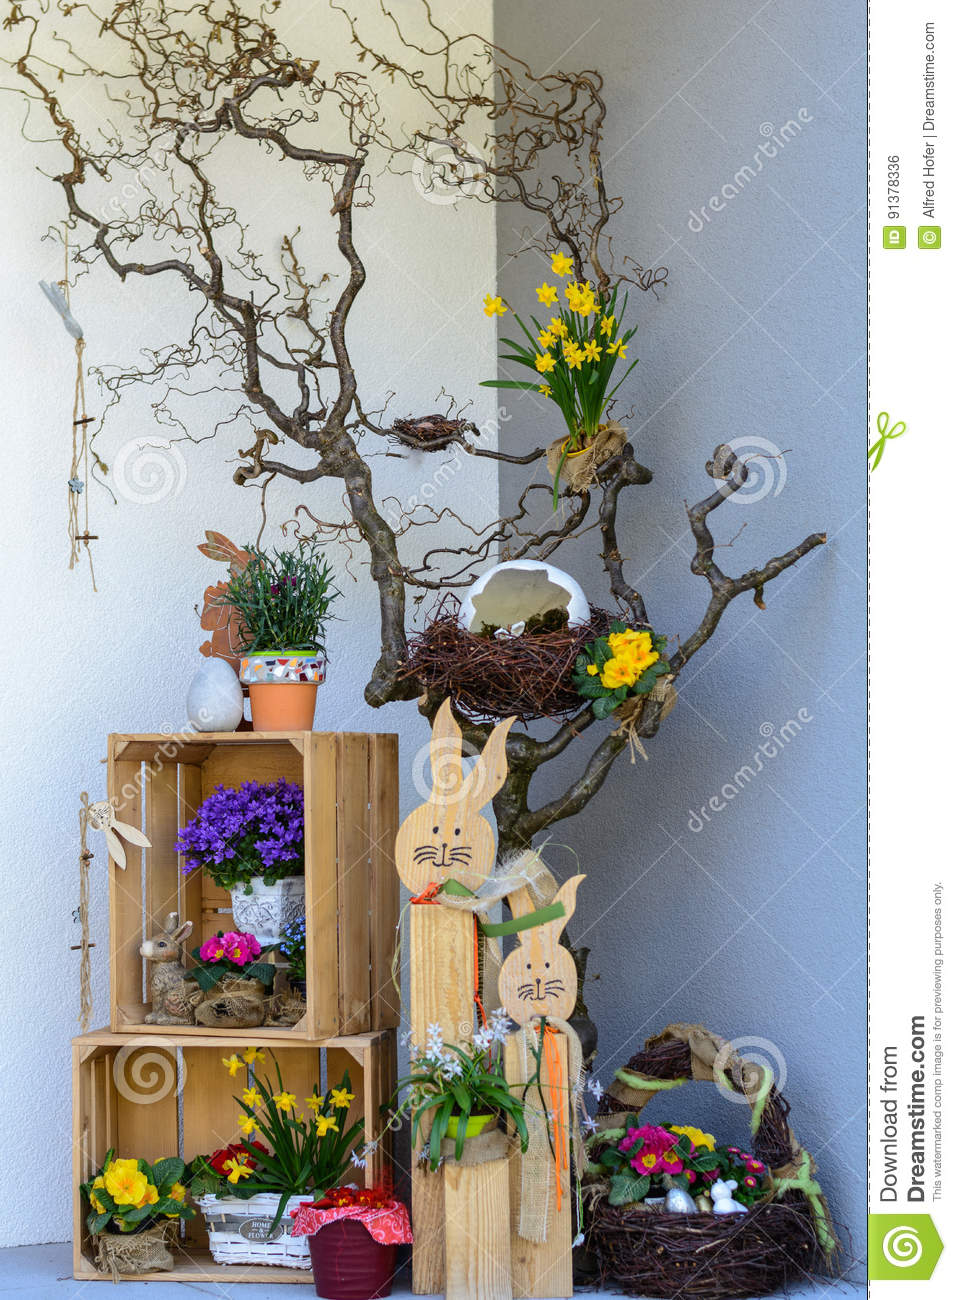 Colorful Easter decoration at home